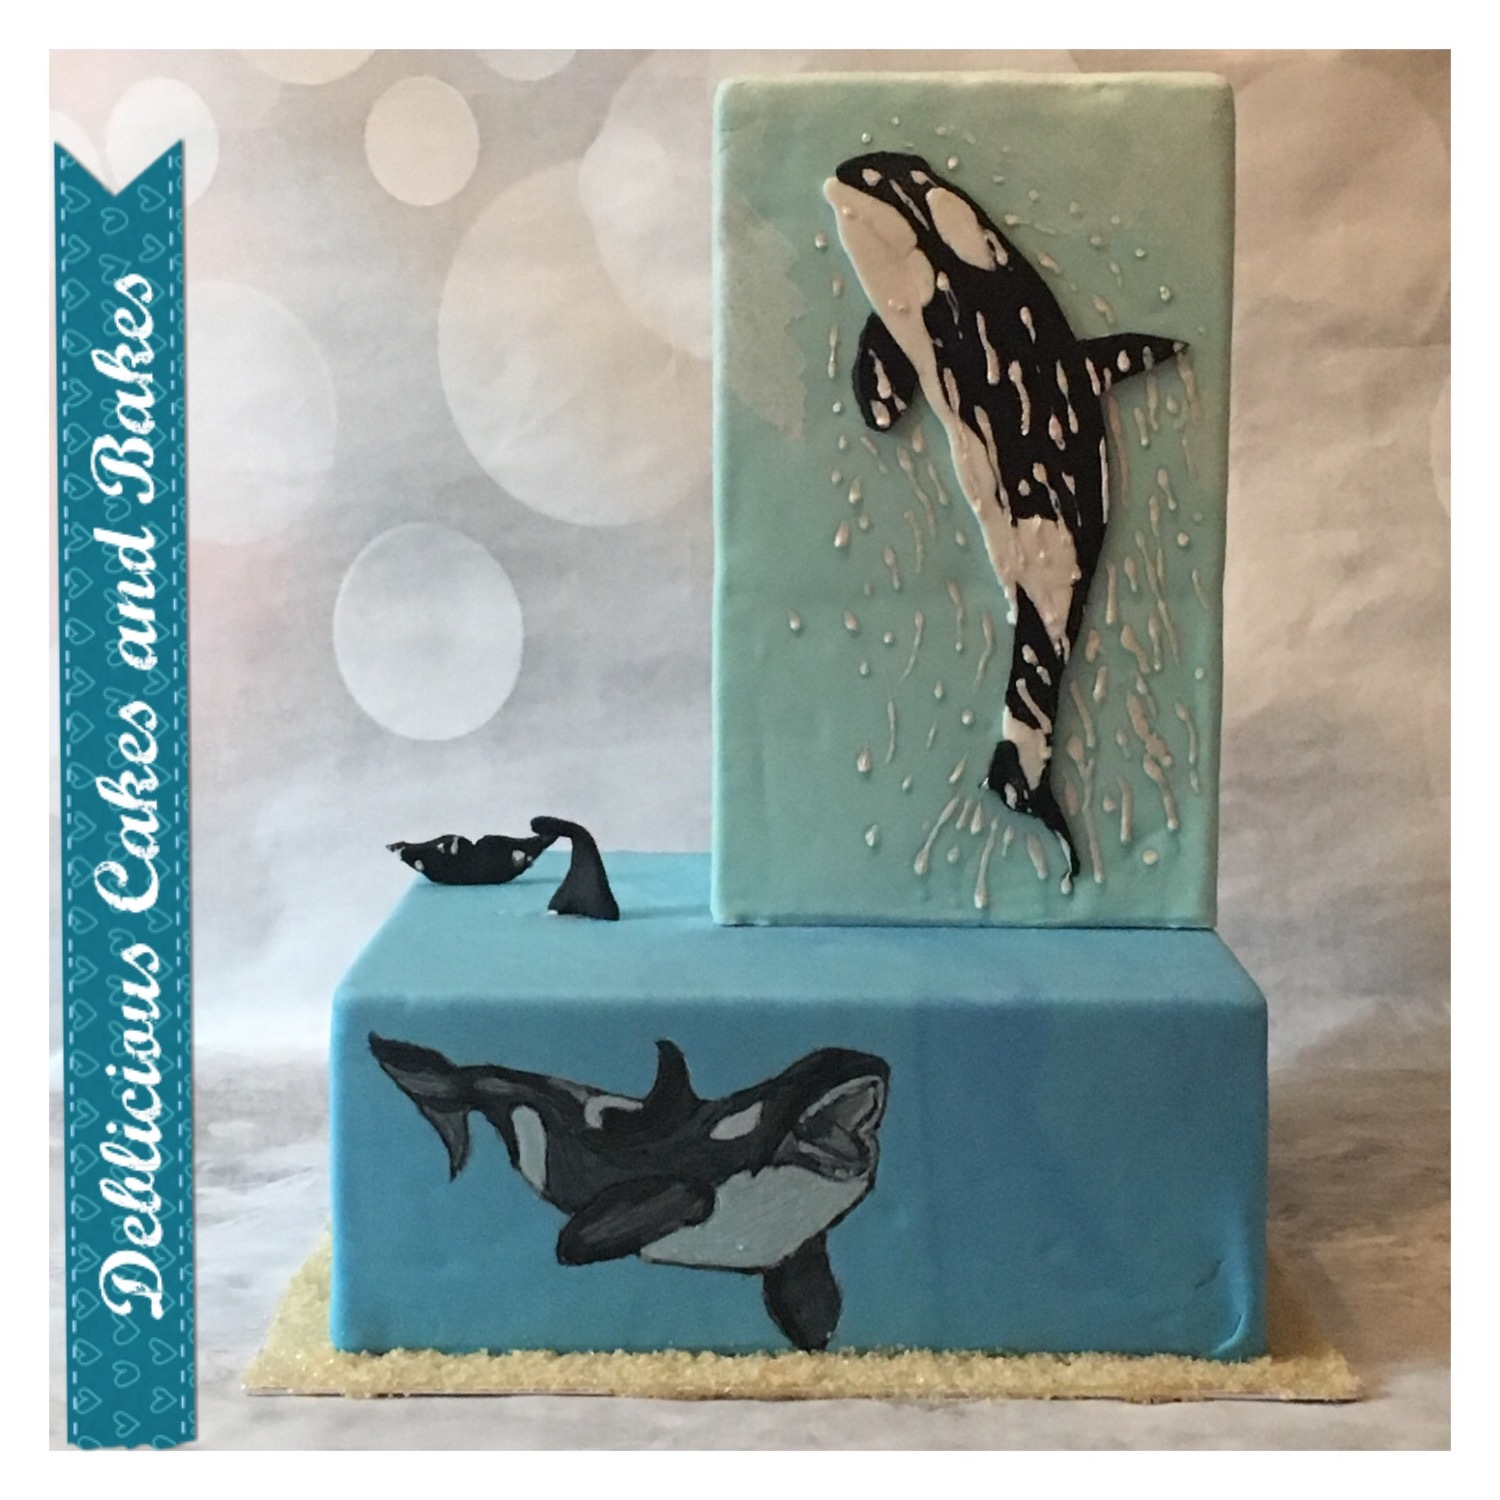 Animal-Rights-Debbie-Rogers-Deblicious-Cakes-and-Bakes-Killer-whale-also-known-as-Orca.jpg#asset:13717